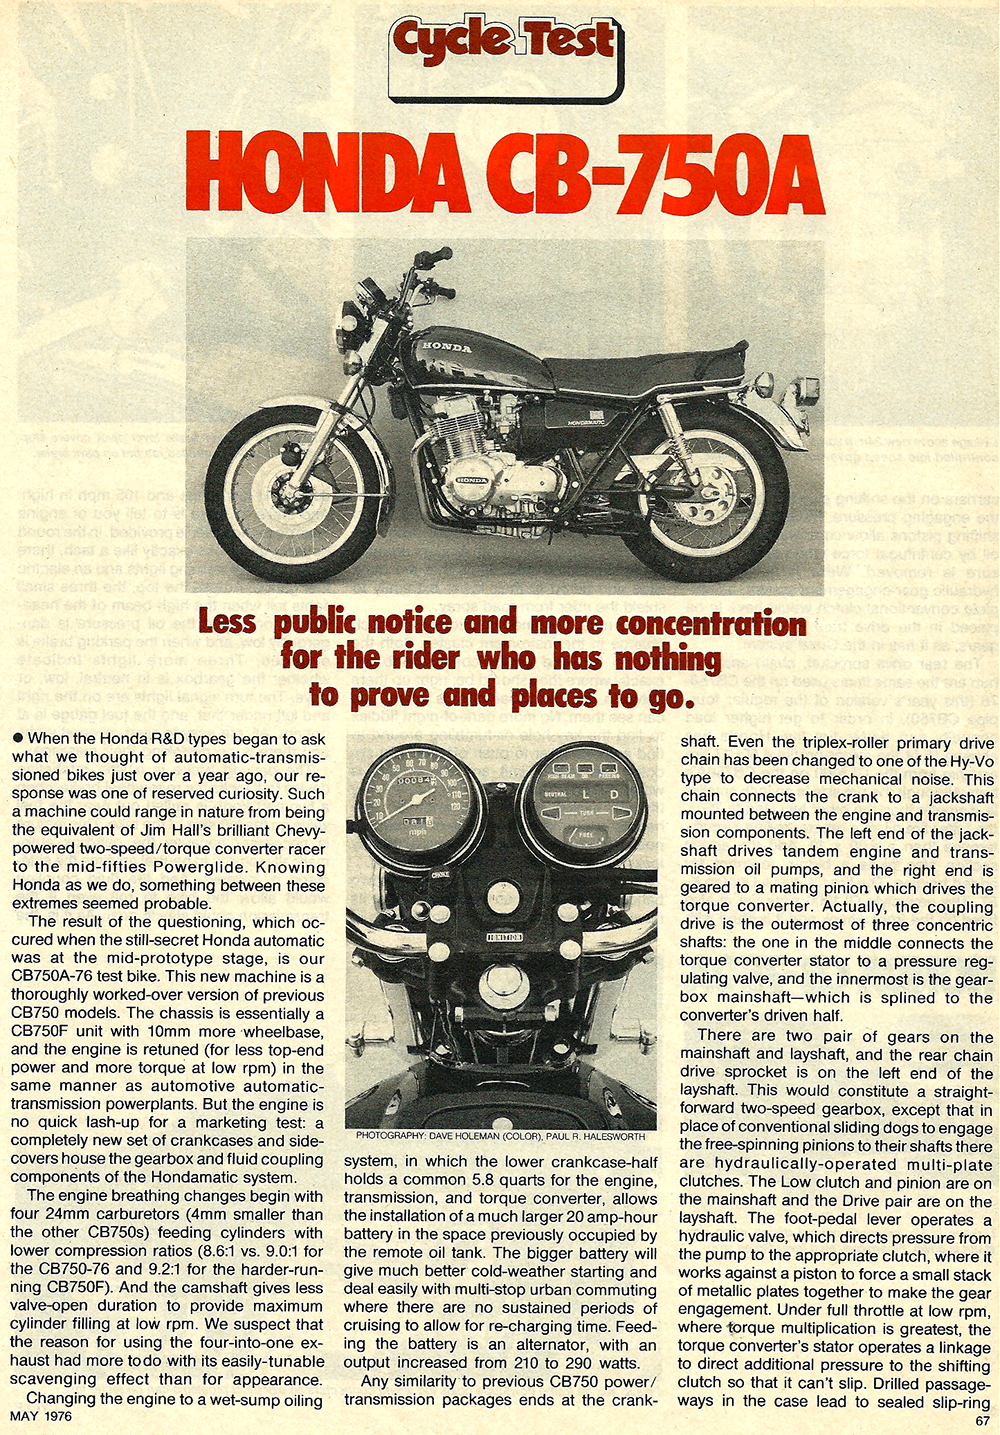 1976 Honda CB750A road test 2.JPG